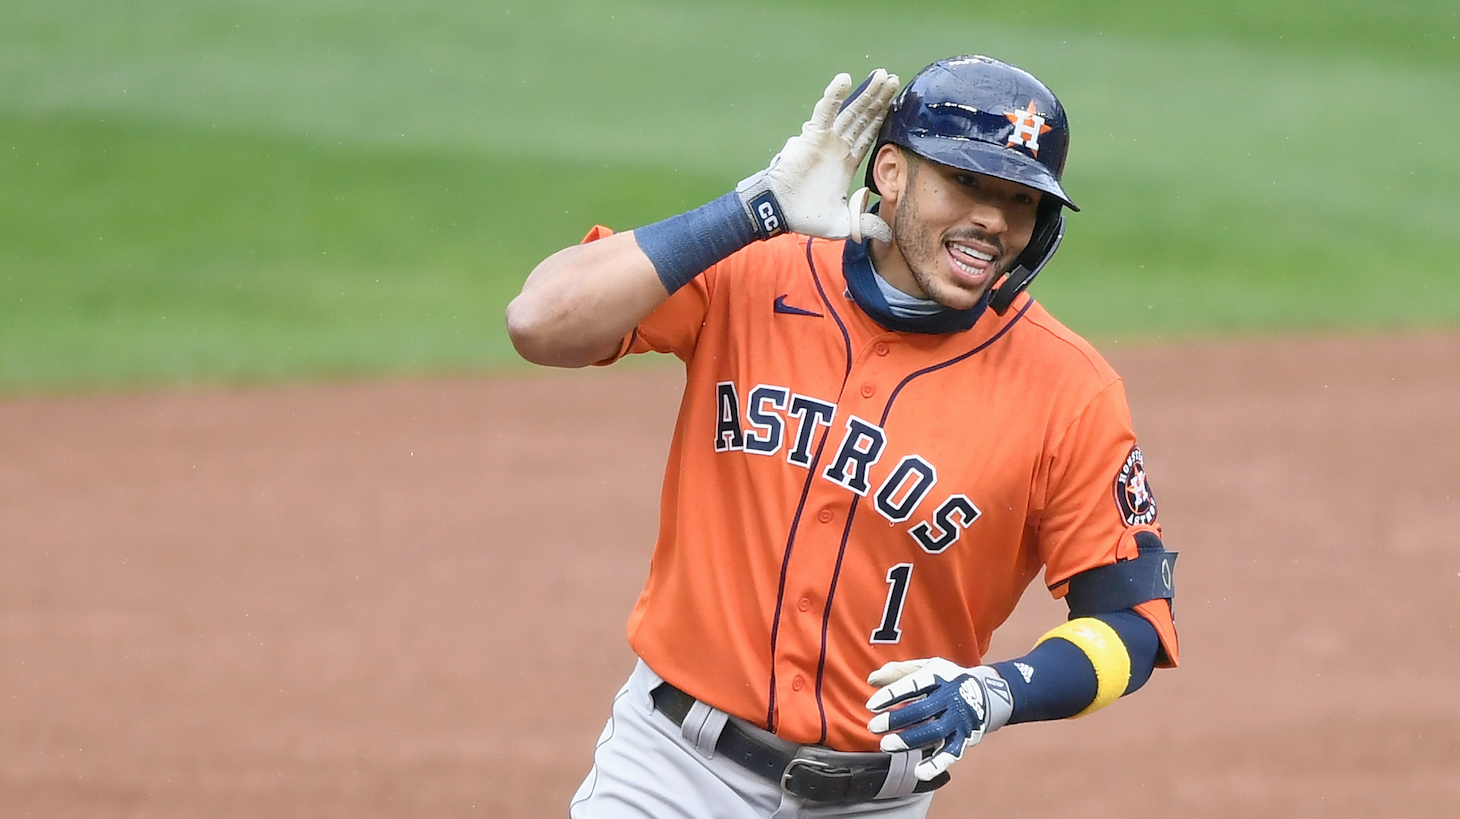 MINNEAPOLIS, MINNESOTA - SEPTEMBER 30: Carlos Correa #1 of the Houston Astros celebrates a solo home run against the Minnesota Twins during the seventh inning of Game Two in the American League Wild Card Round at Target Field on September 30, 2020 in Minneapolis, Minnesota. The Astros defeated the Twins 3-1. (Photo by Hannah Foslien/Getty Images)